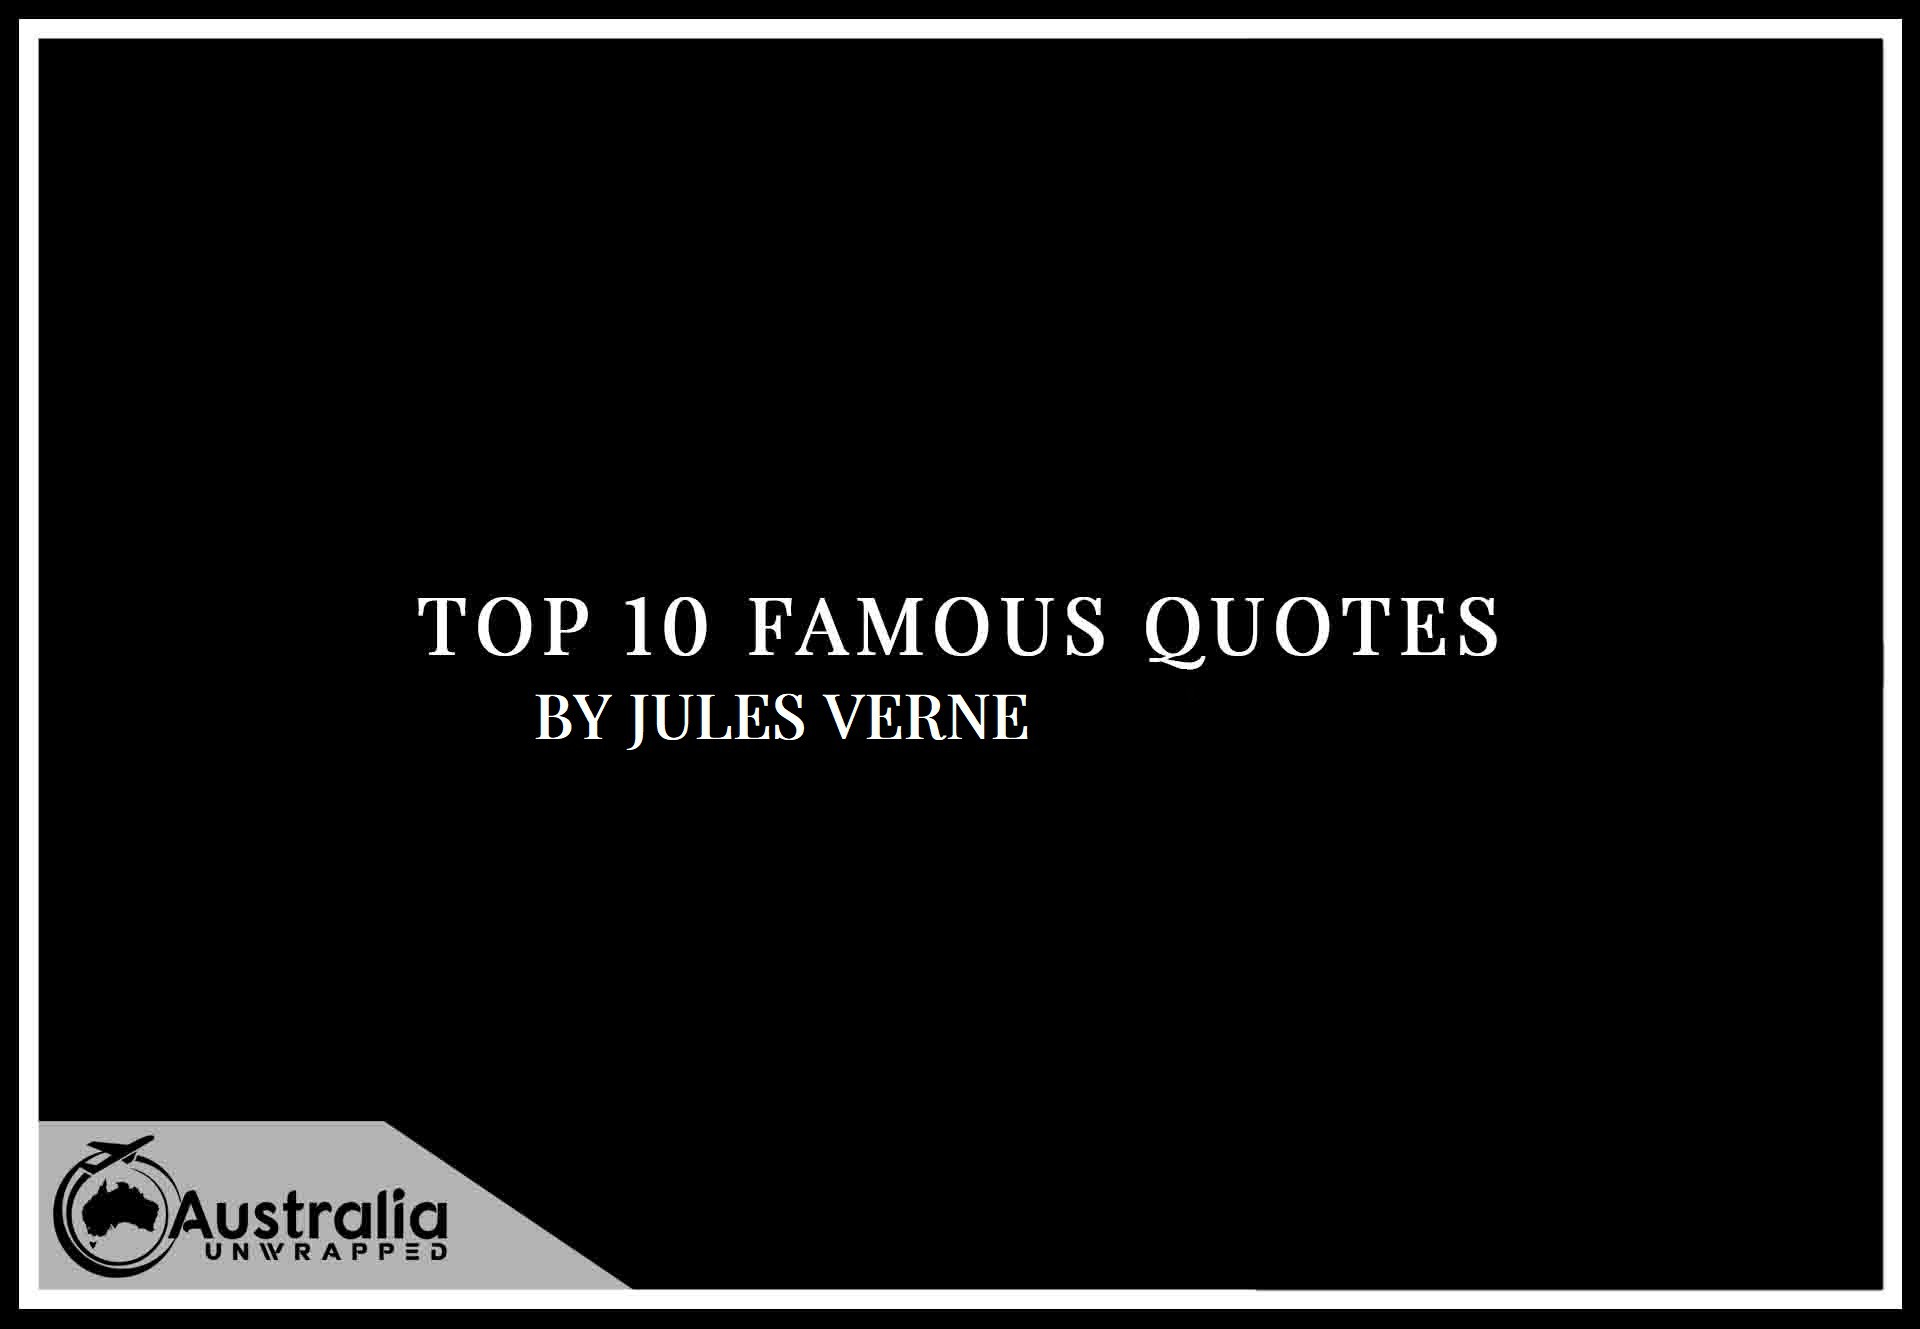 Top 10 Famous Quotes by Author Jules Verne